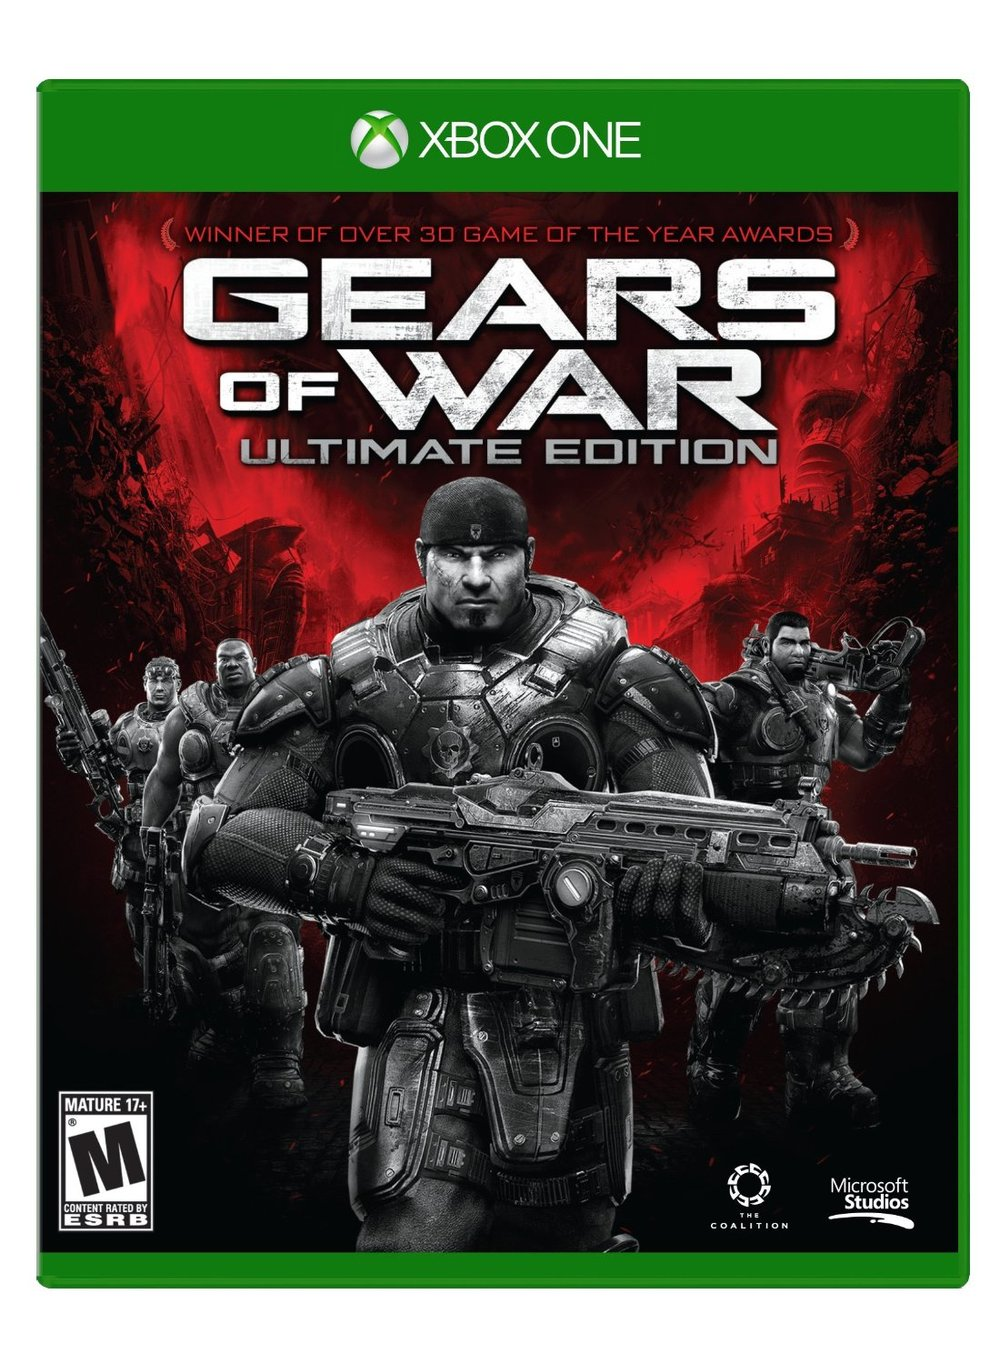 Xbox One Review: Gears of War Ultimate Edition